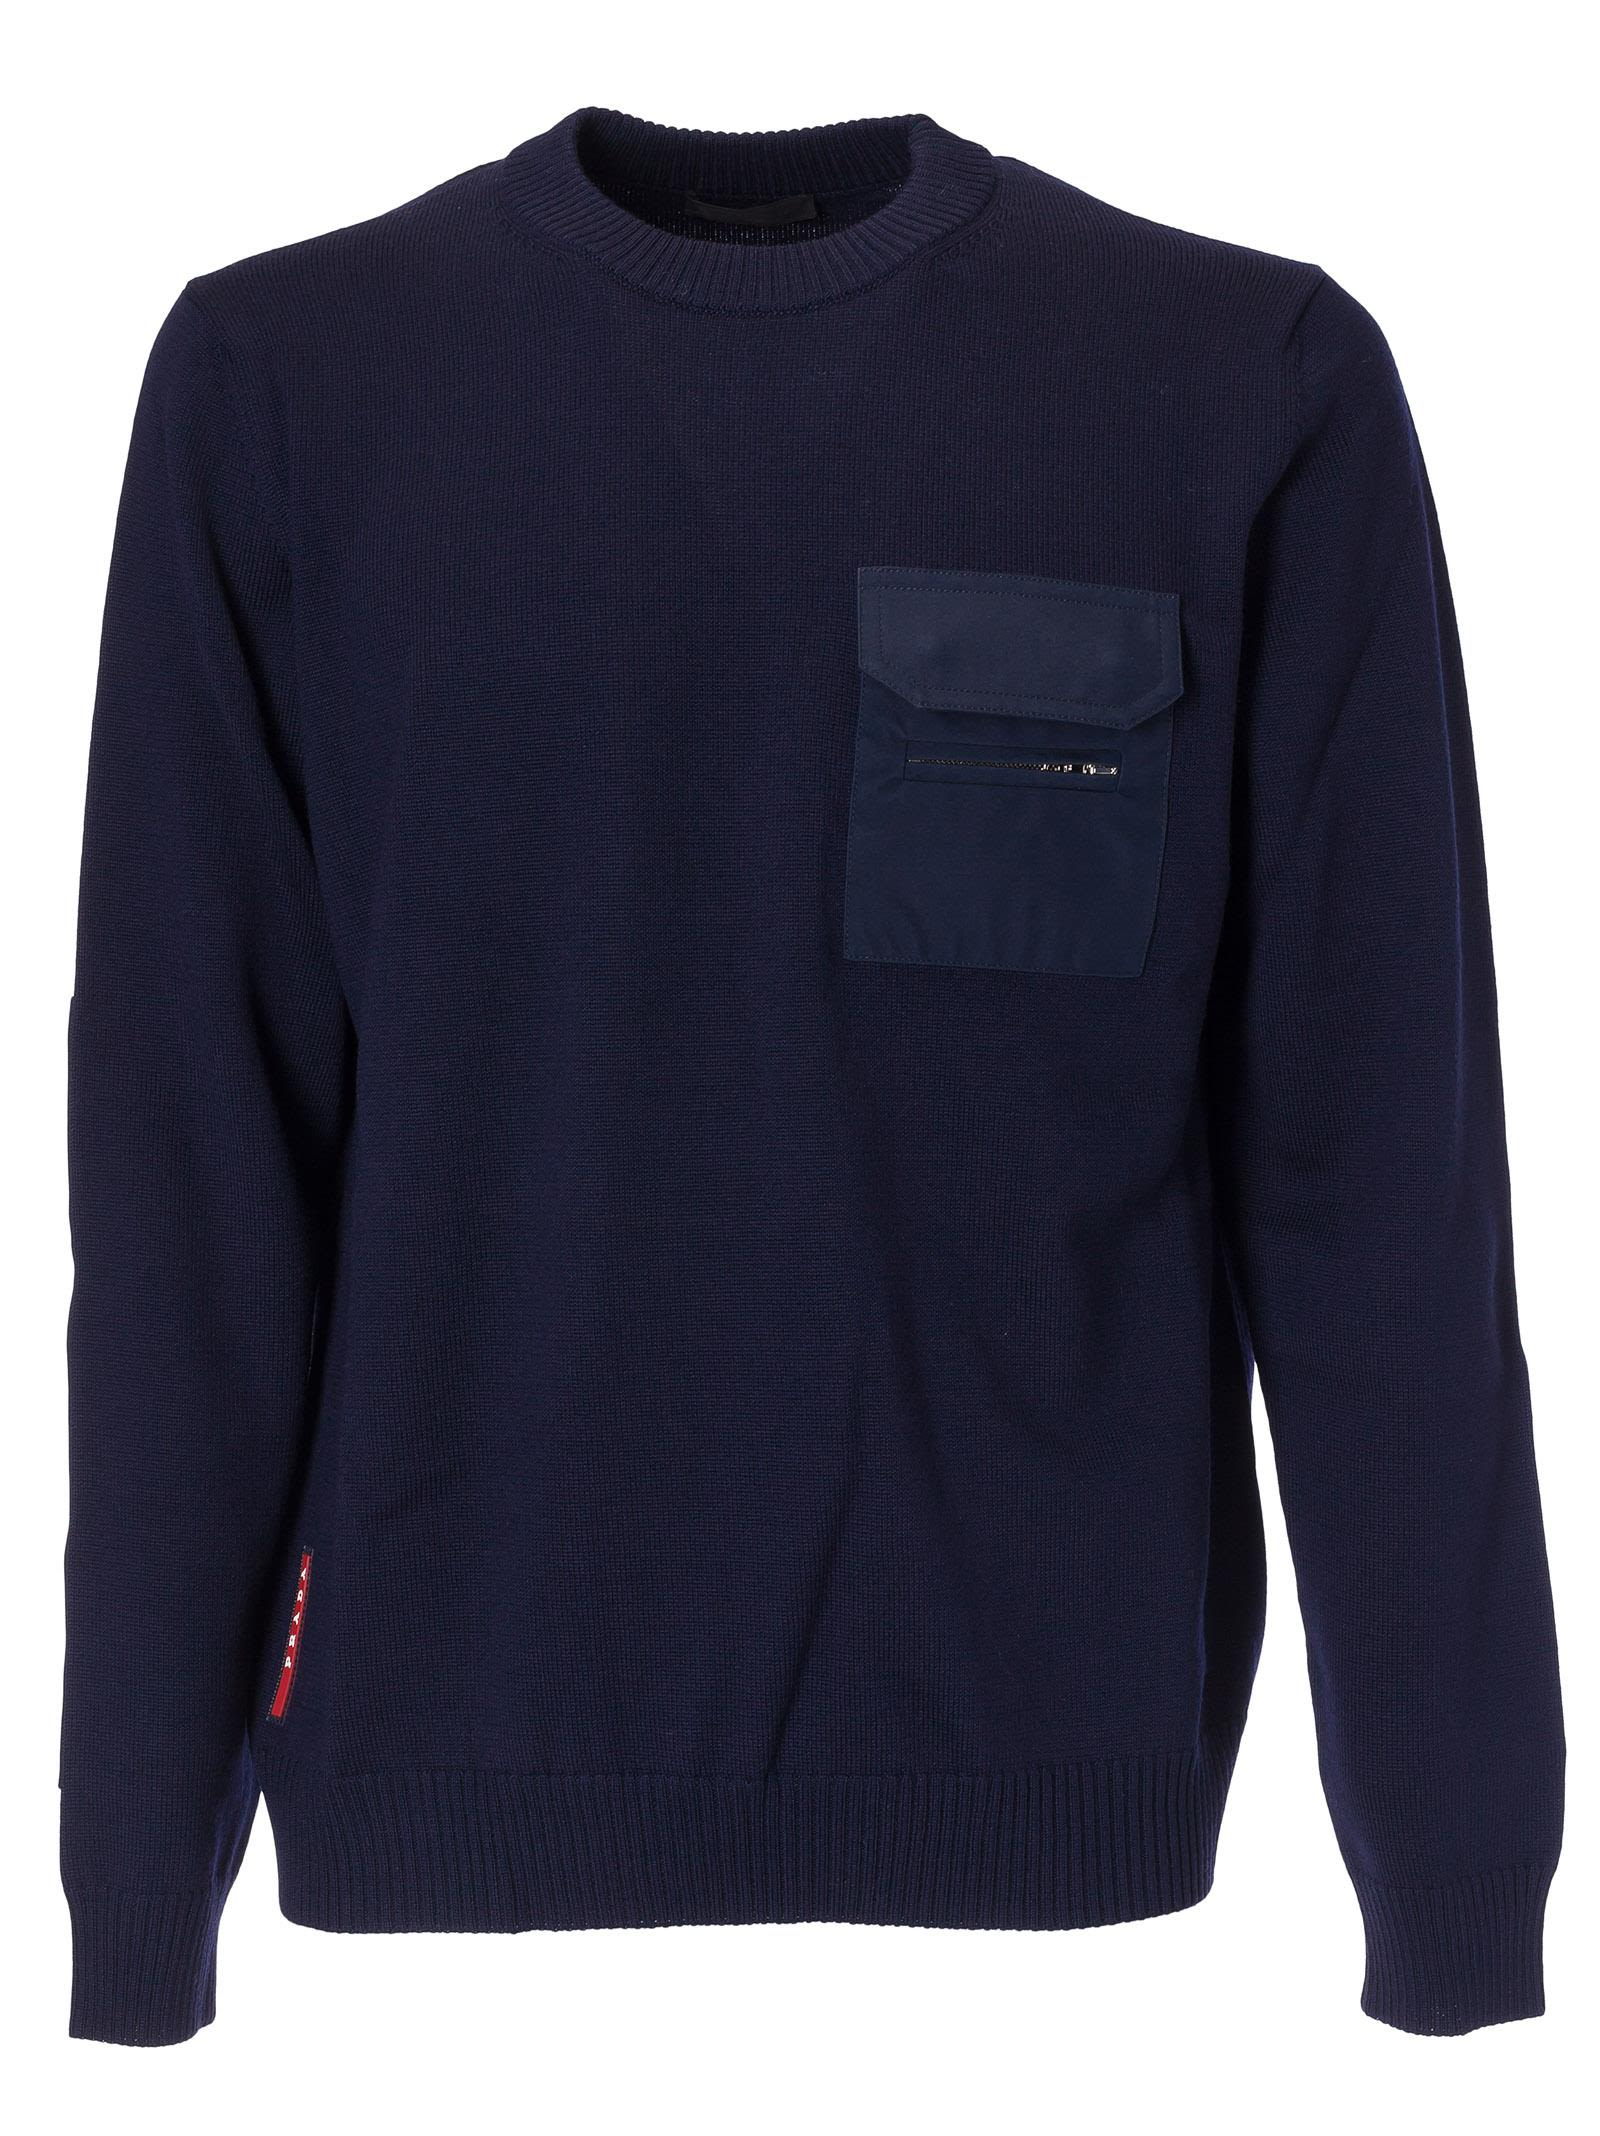 Prada Linea Rossa Chest Pocket Jumper